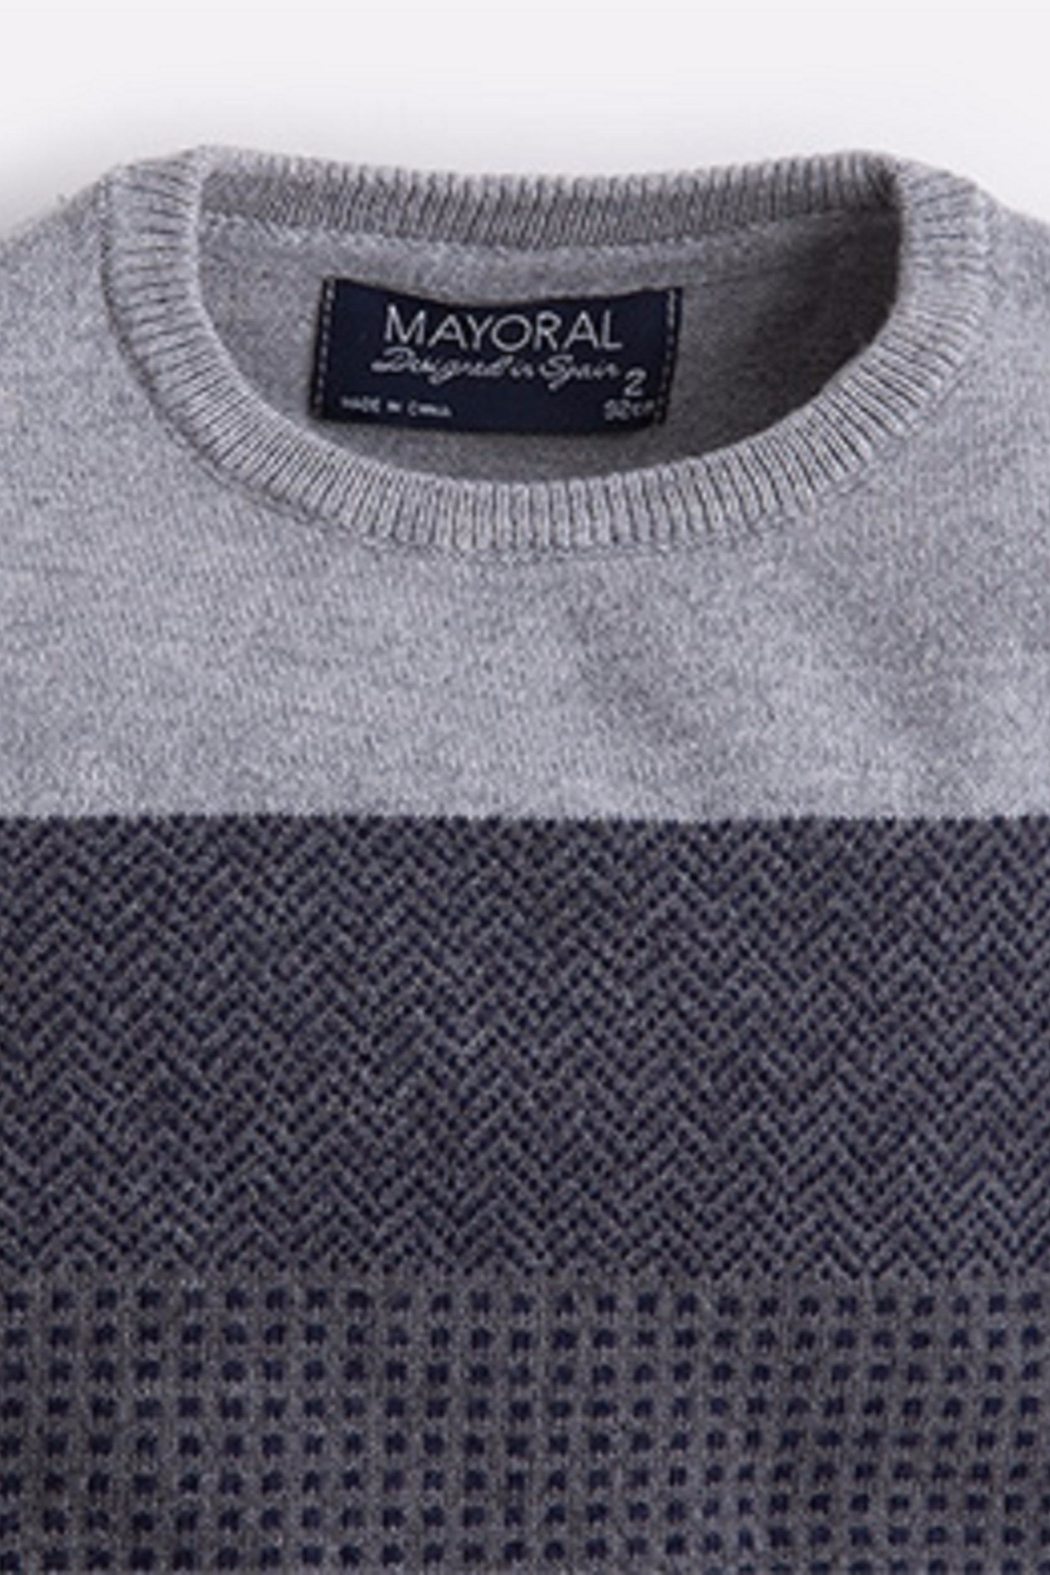 Mayoral Boys Smart Set - Back Cropped Image